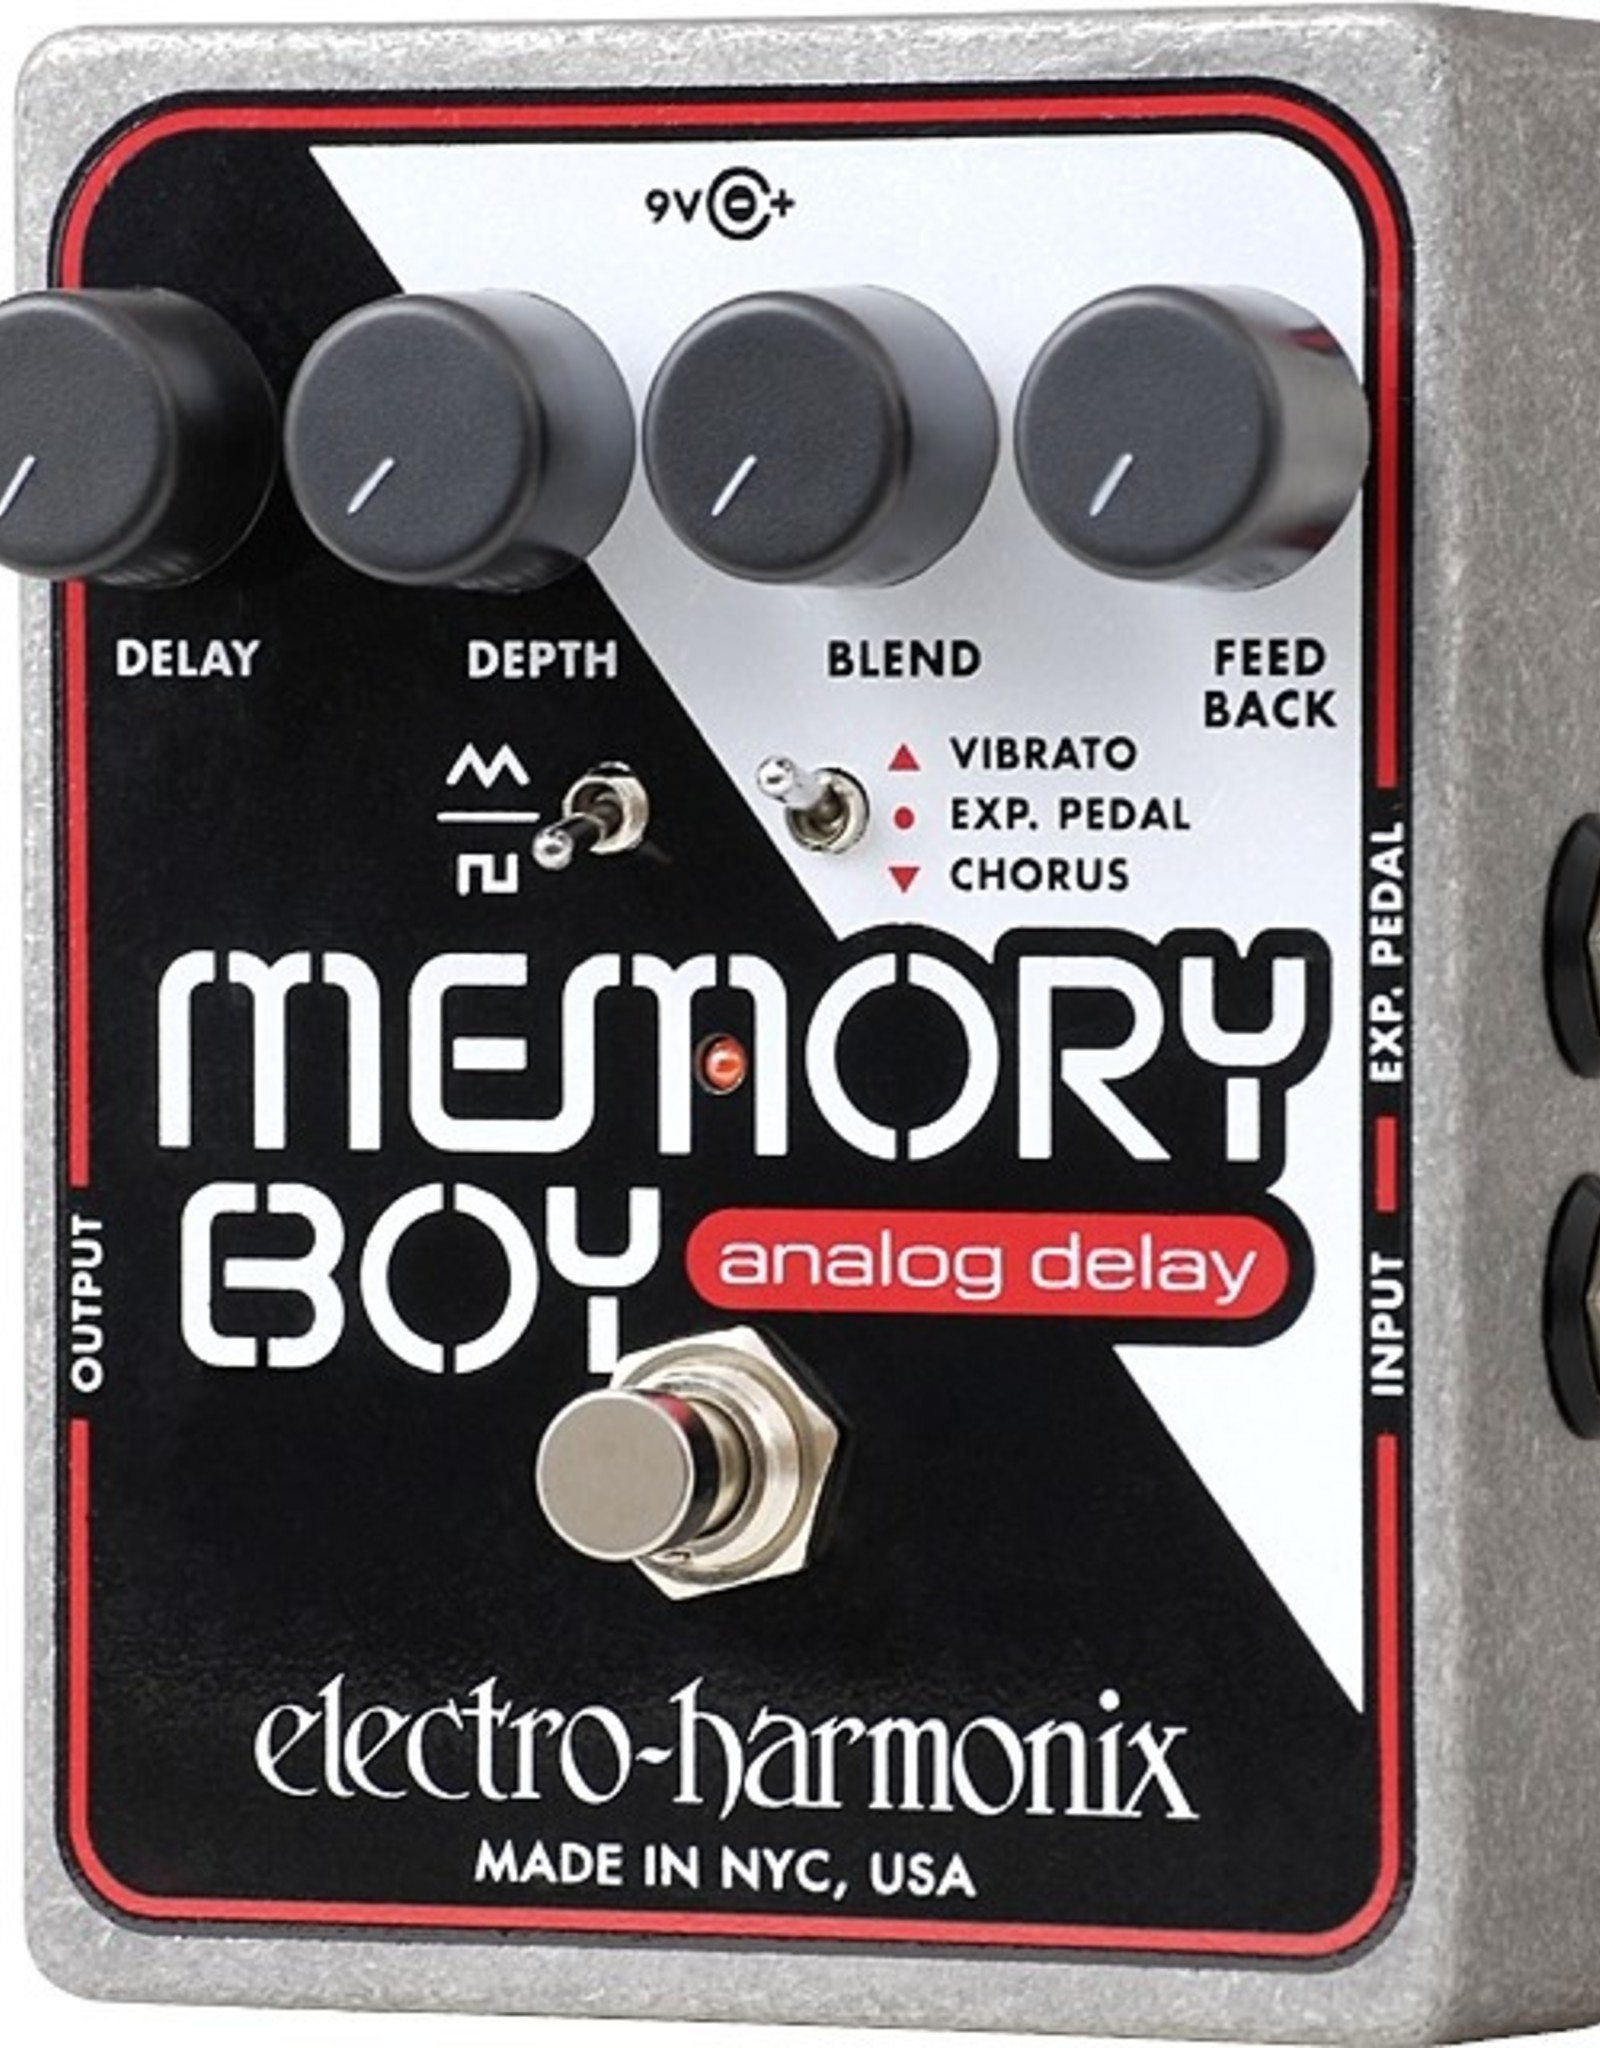 Electro-Harmonix Electro-Harmonix Memory Boy - Analog Echo/Chorus/Vibrato, 9.6DC-200 PSU included